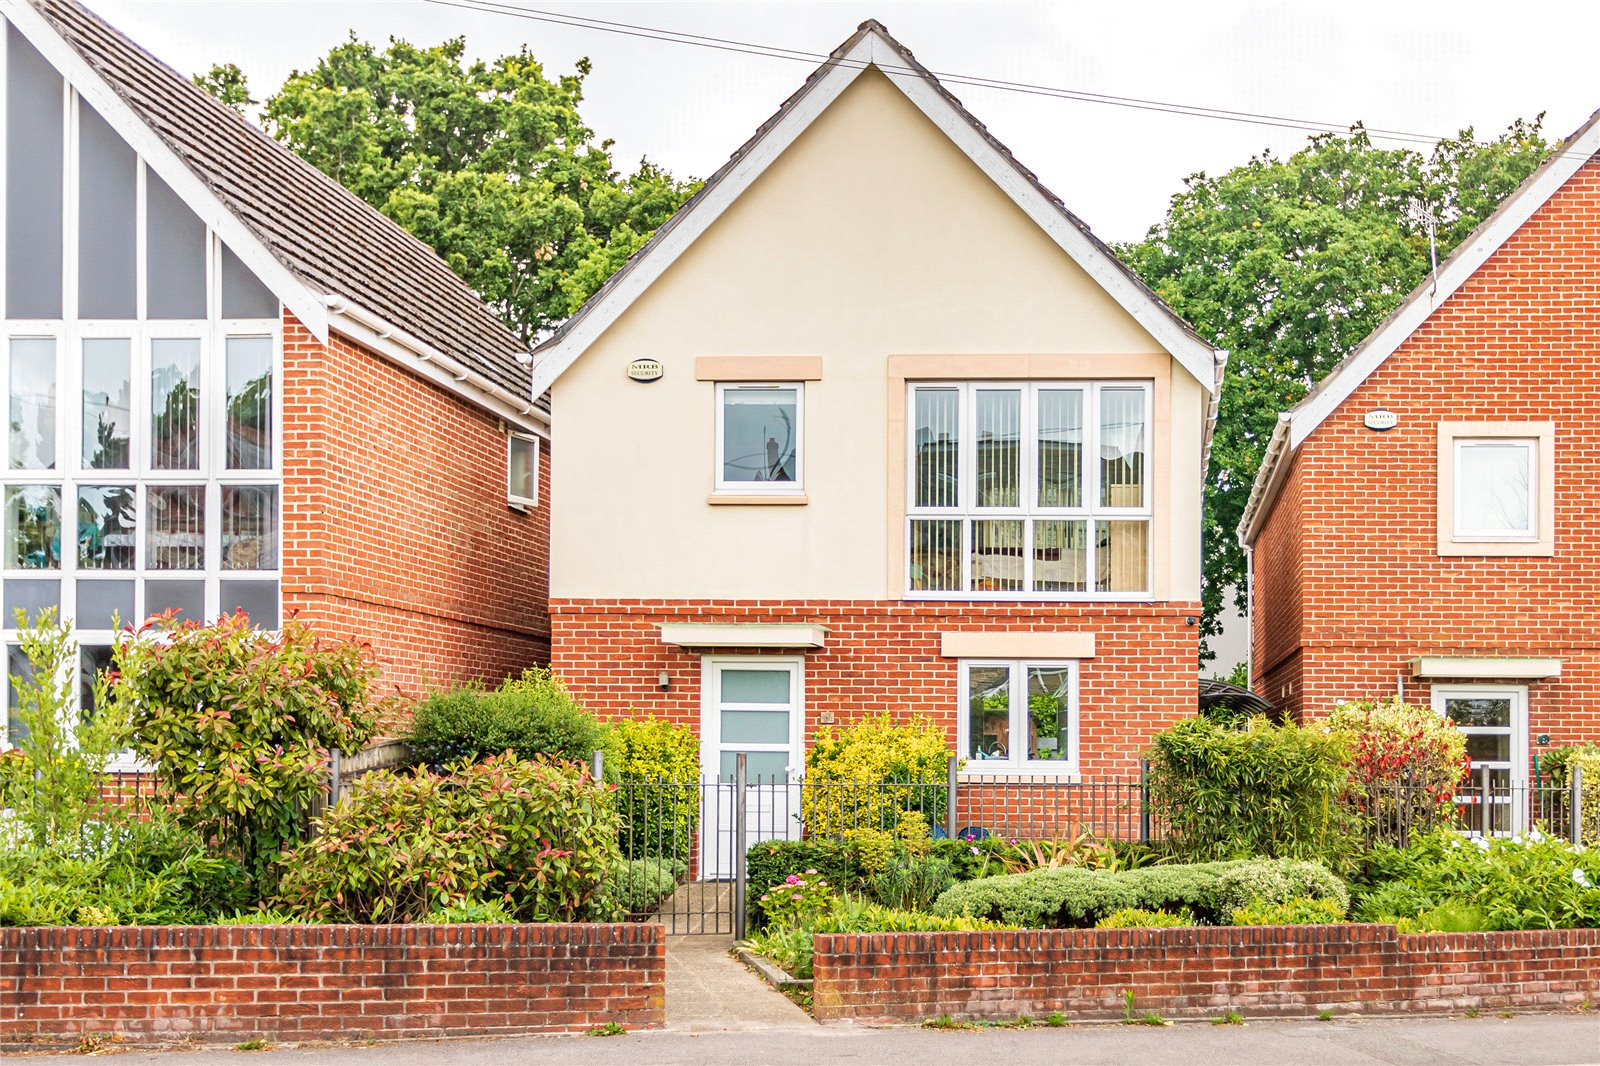 3 bed house for sale in Kingsbridge Road, Lower Parkstone - Property Image 1